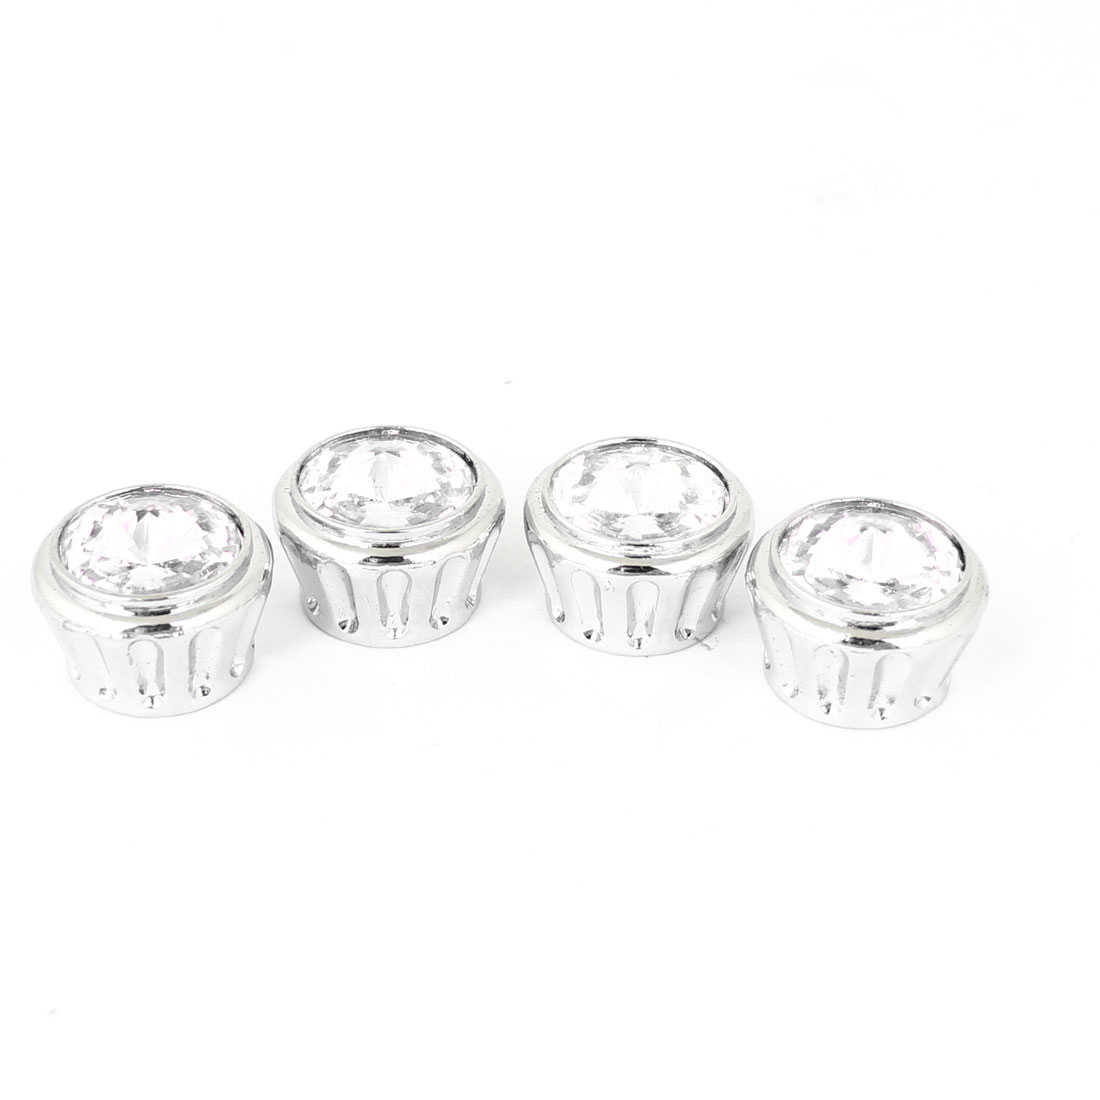 Silver Tone Clear Plastic Rhinestone Accent Auto Plate Screw Bolt 4 Pcs